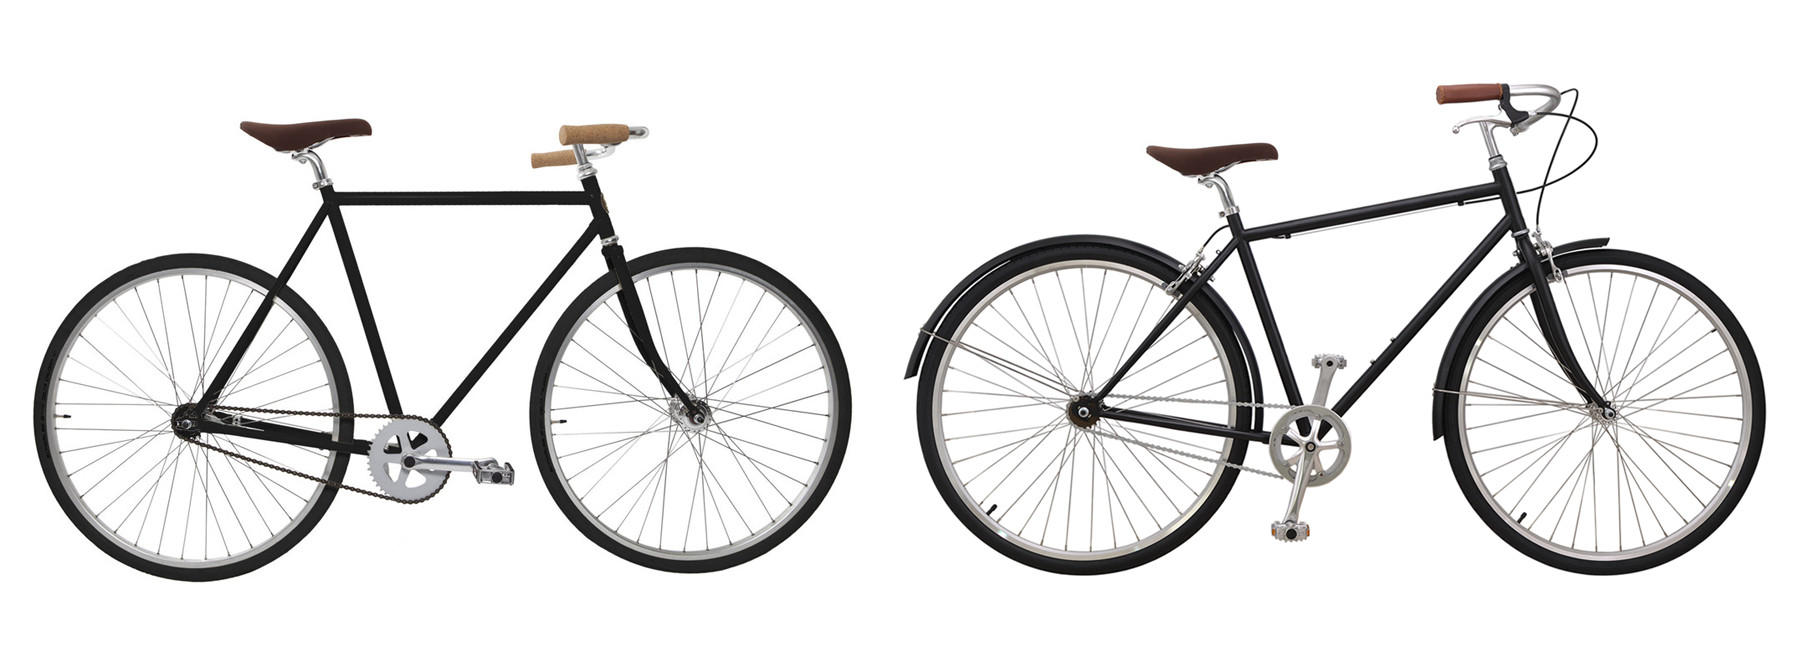 """b7f3cd2915b The frame on the left is a classic diamond frame that I prefer. On the  right is the """"sportier"""" men's frame design that has grown popular as of  late, ..."""